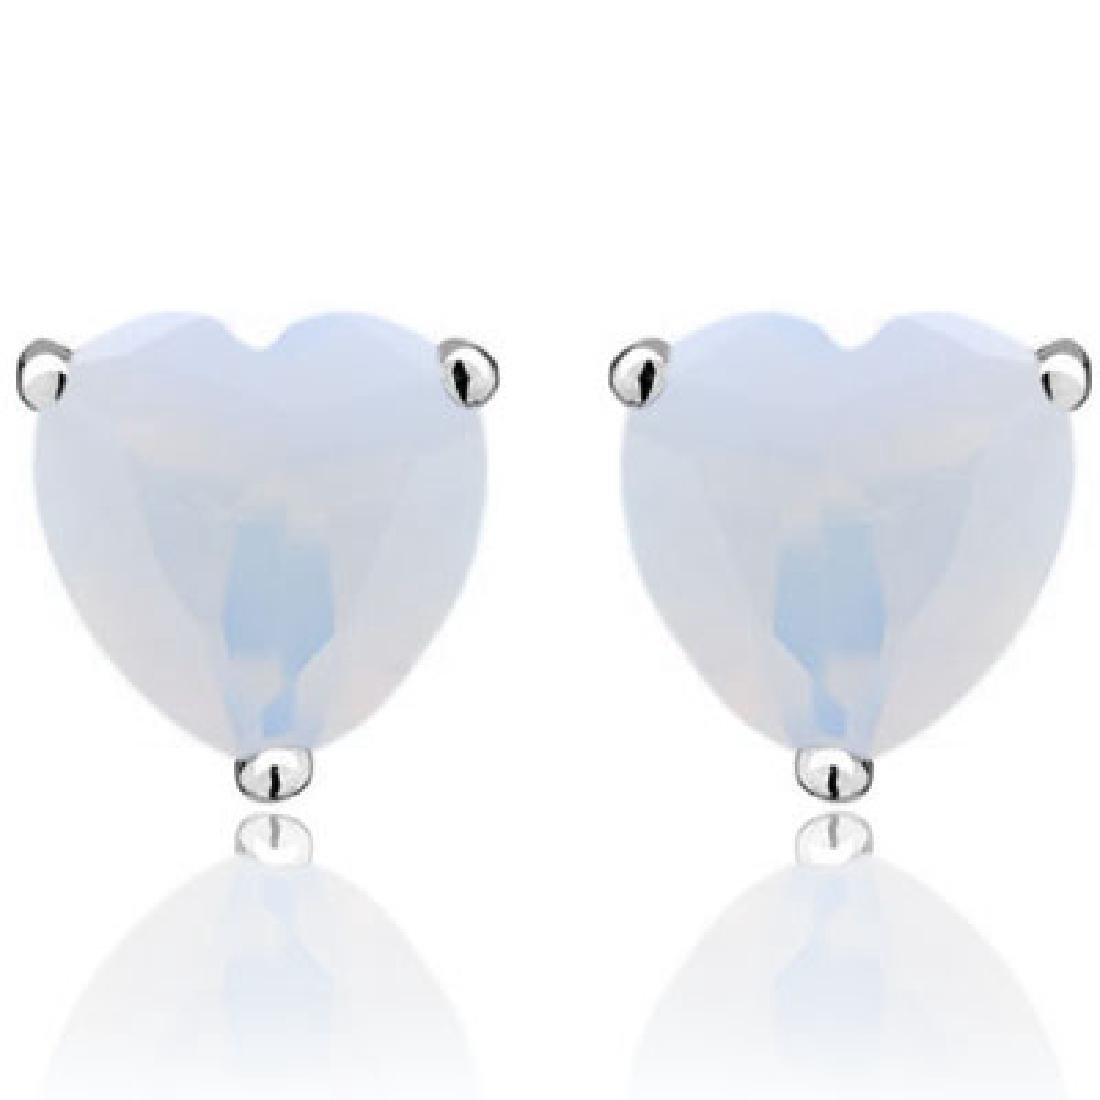 1CT FIRE OPAL HEART CUT SOLITAIRE EARRINGS